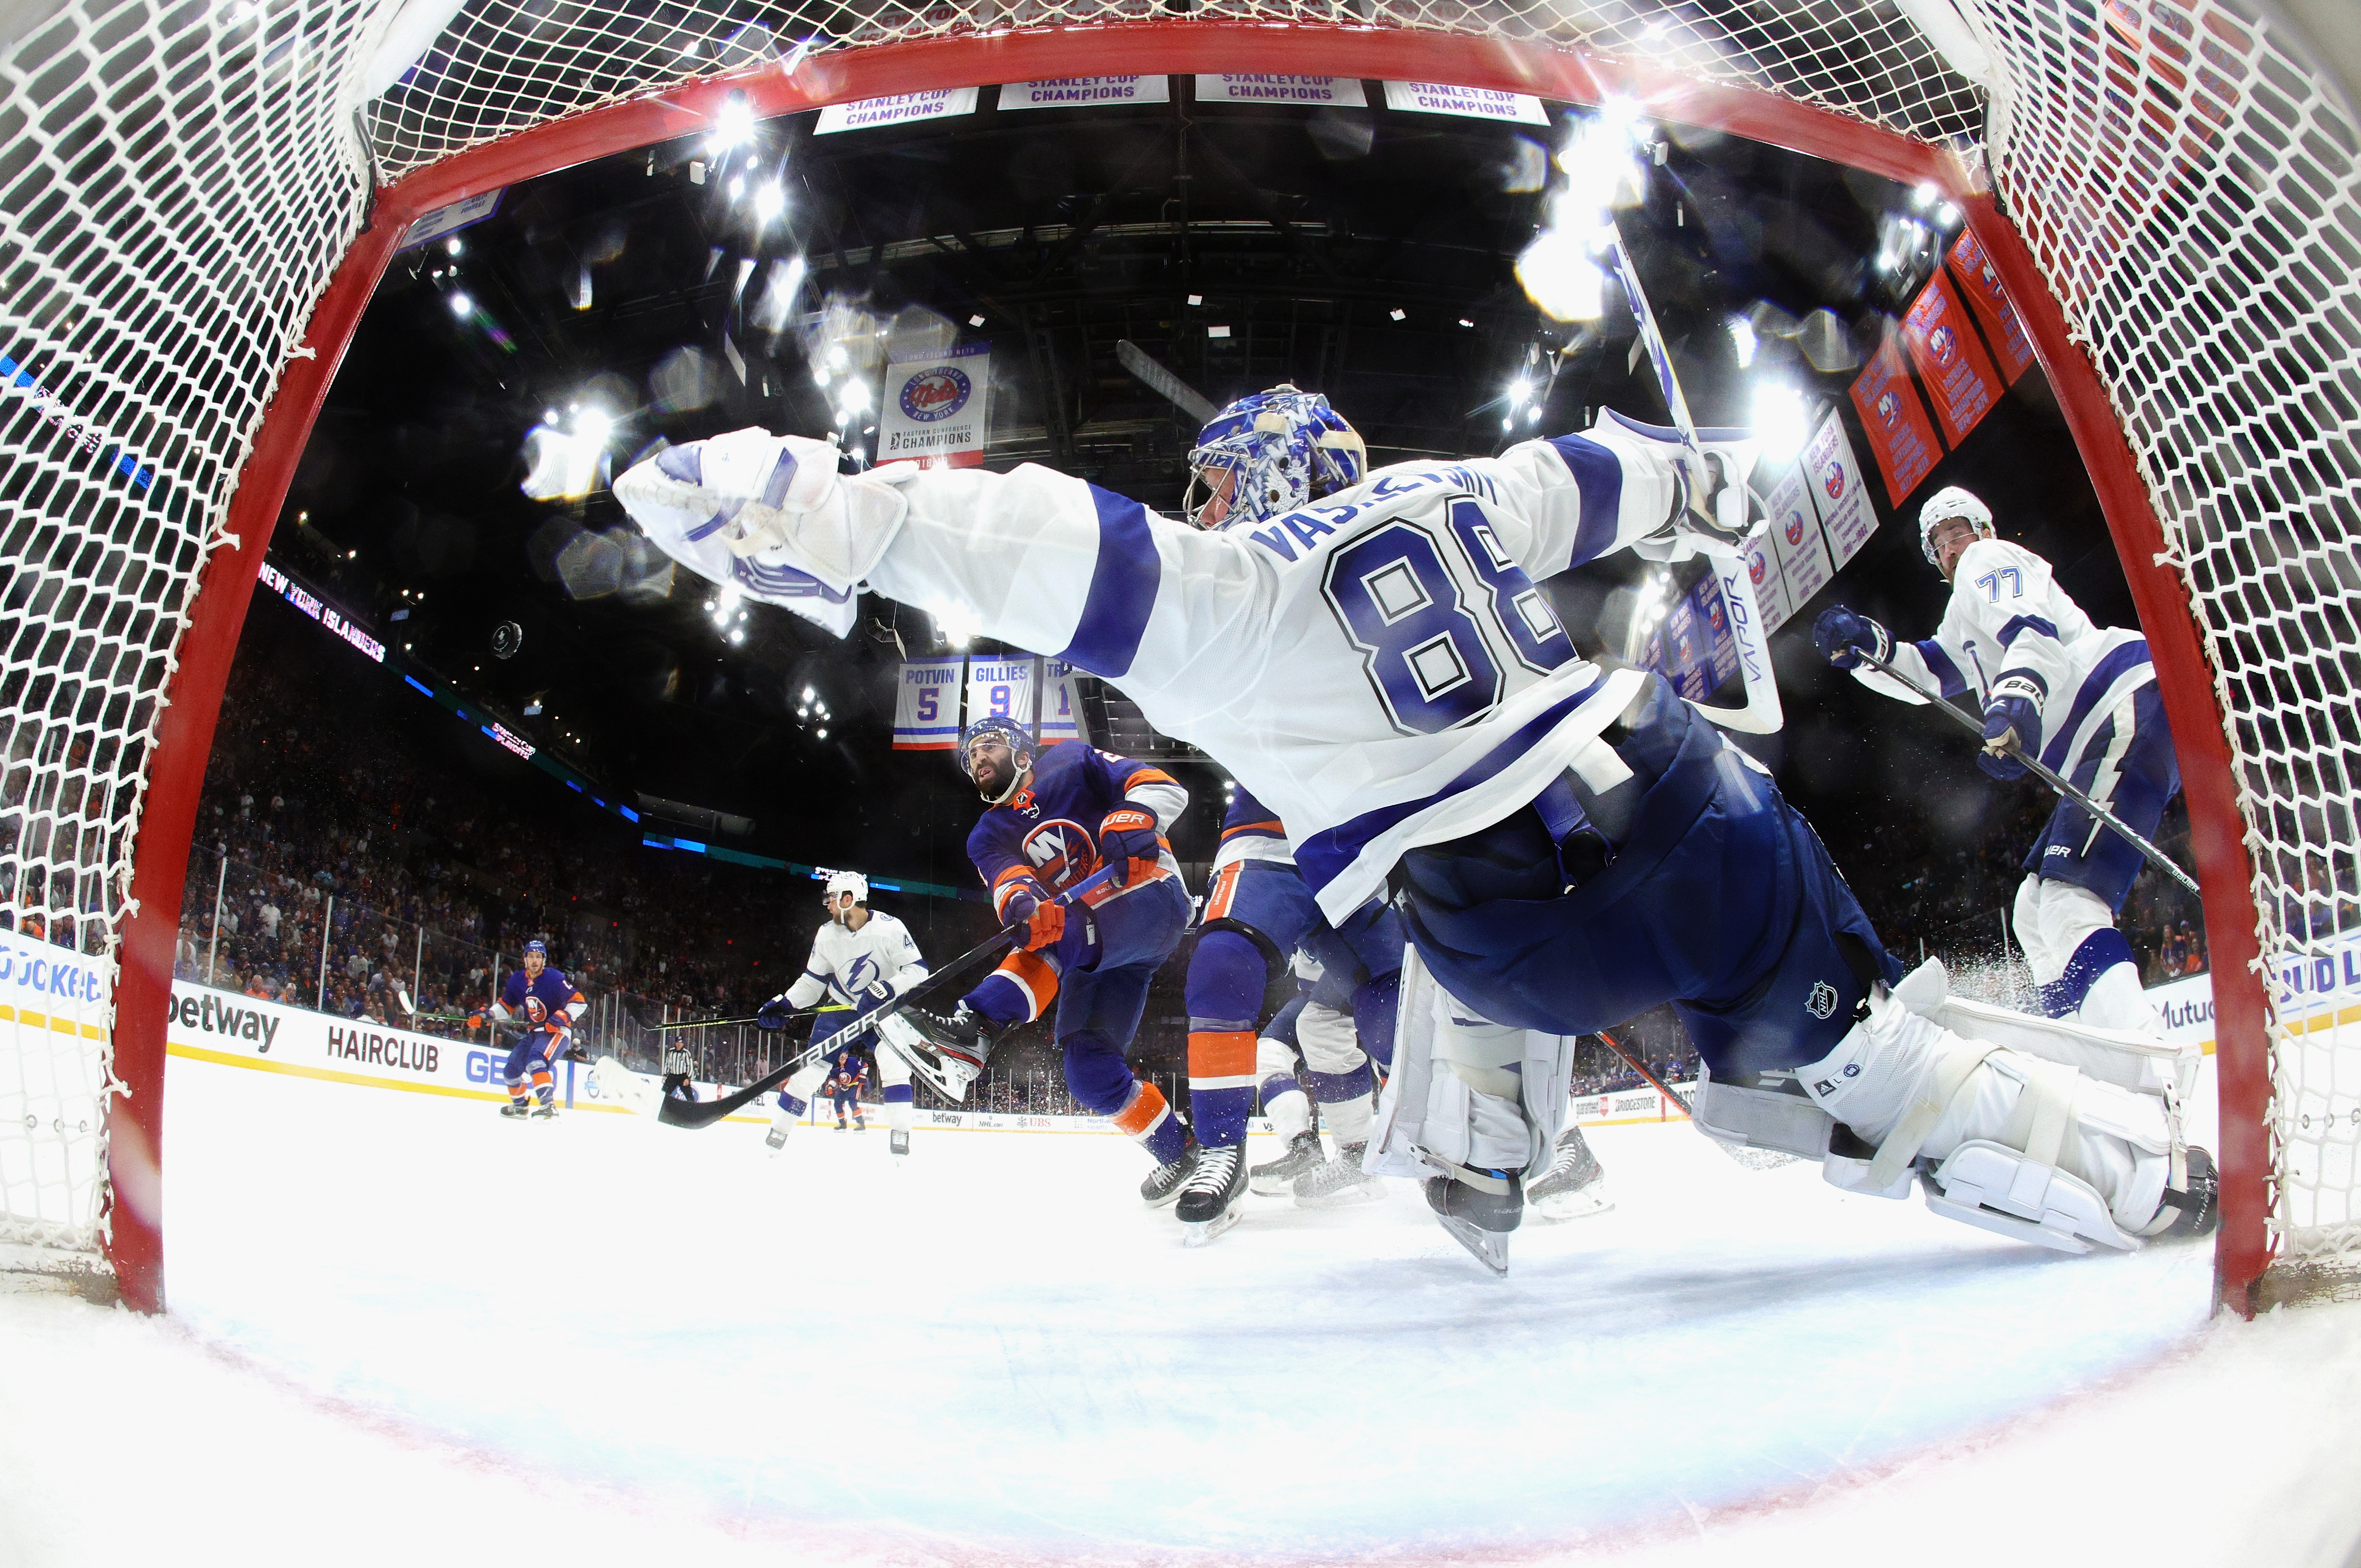 Andrei Vasilevskiy #88 of the Tampa Bay Lightning skates against the New York Islanders in Game Four of the Stanley Cup Semifinals during the 2021 Stanley Cup Playoffs at the Nassau Coliseum on June 19, 2021 in Uniondale, New York. The Islanders defeated the Lightning 3-2.